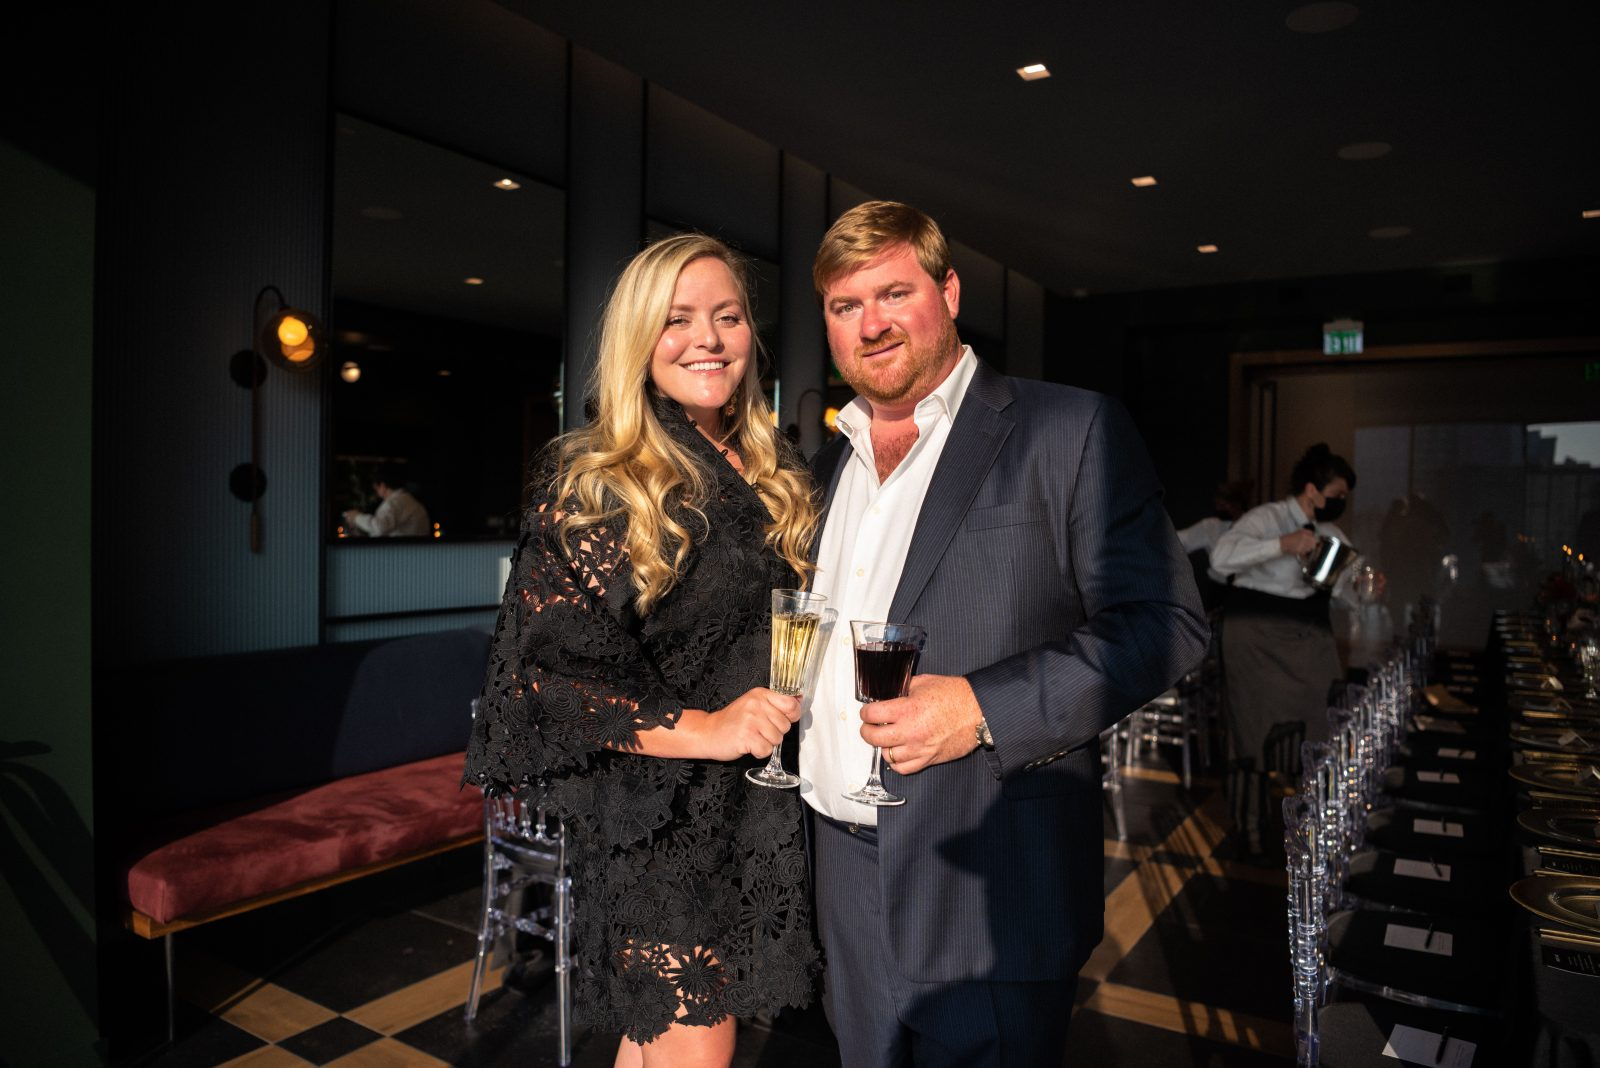 sarah lawrence drew lawrence fourth capital and the nashville edit seated dinner at fourth capital in downtown nashville for music city grand prix